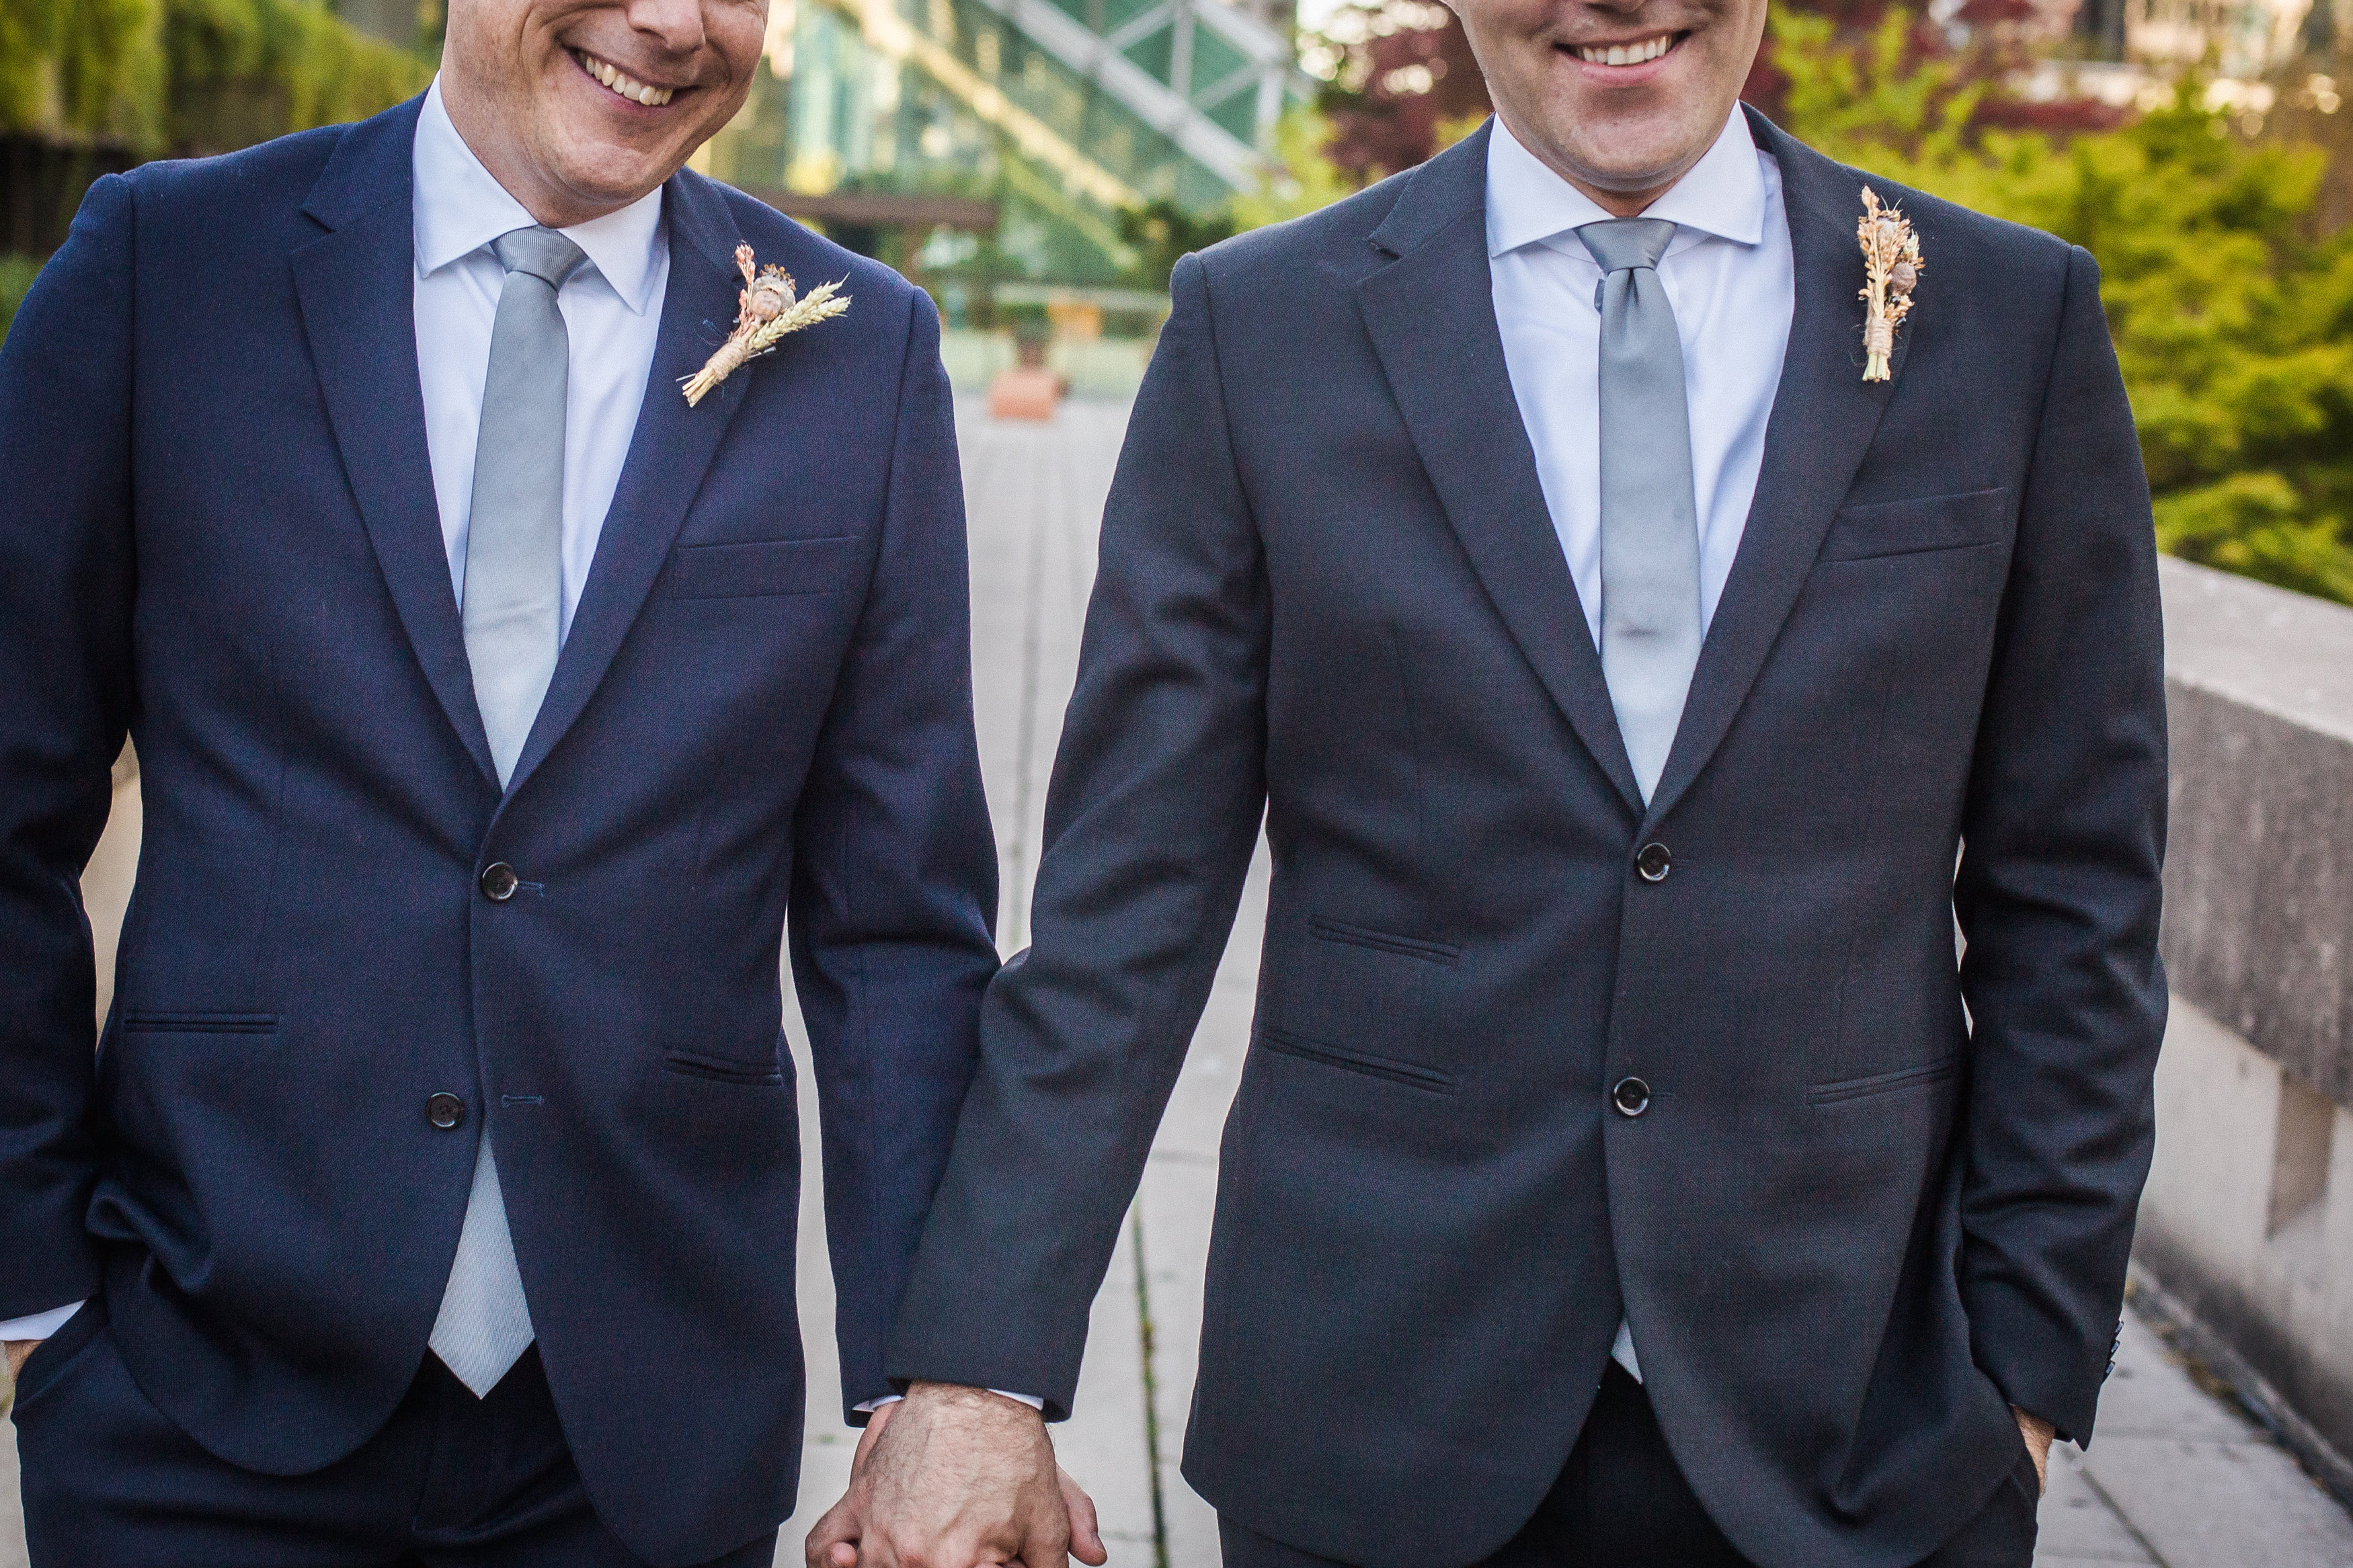 vancouver-gay-wedding-photographer-022